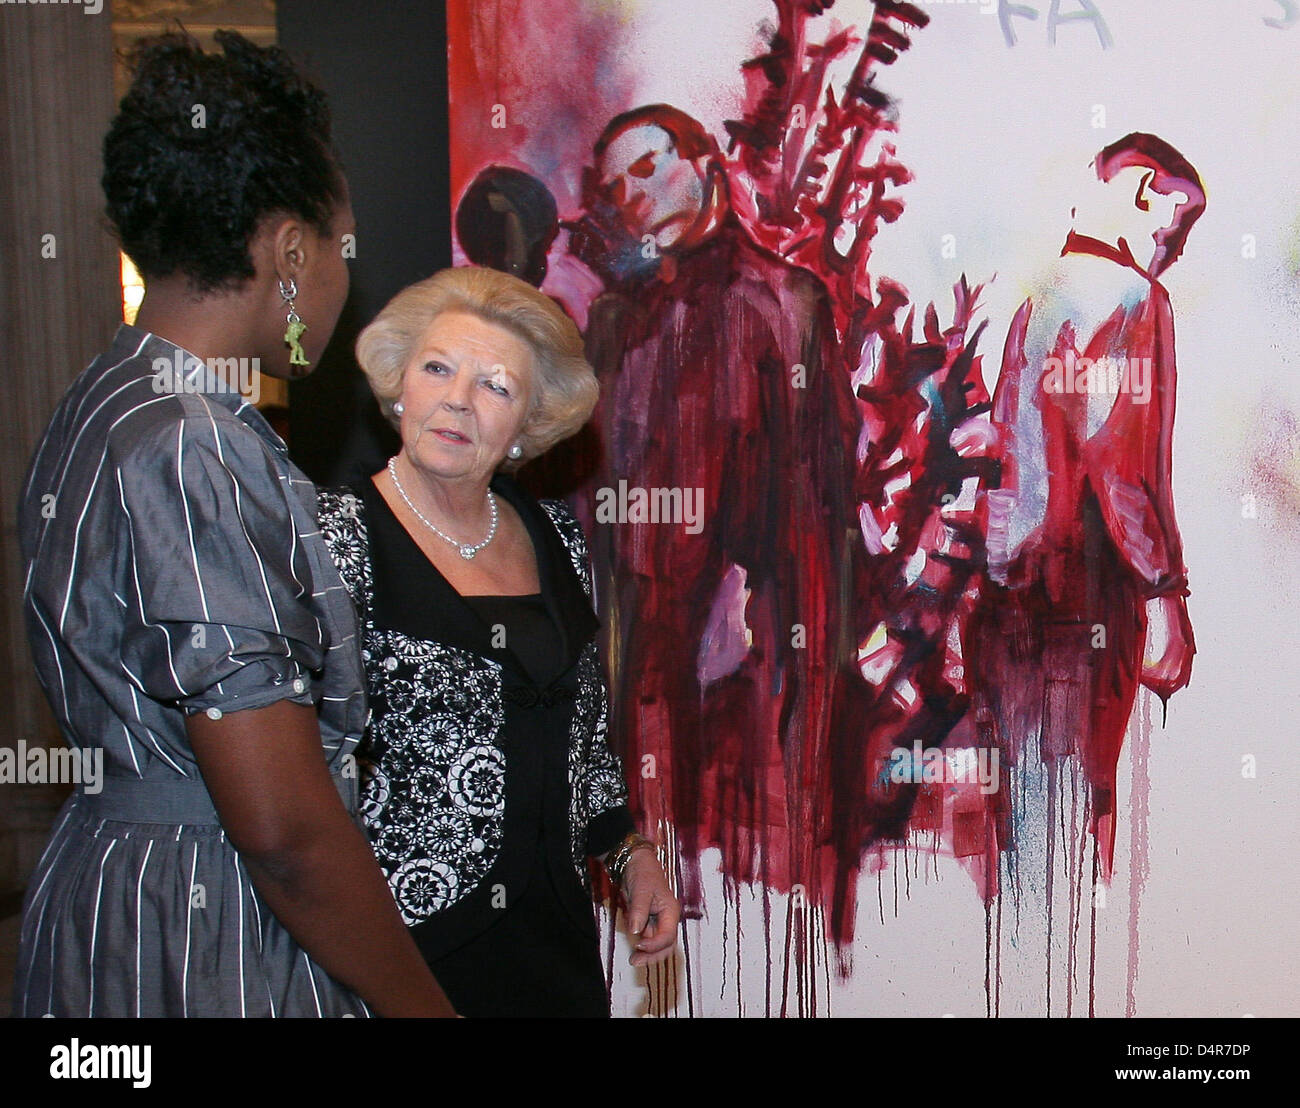 Queen Beatrix of the Netherlands (2-L) talks with Royal Awards for Painting 2009 laureate Esiri Erheriene-Essie - Stock Image